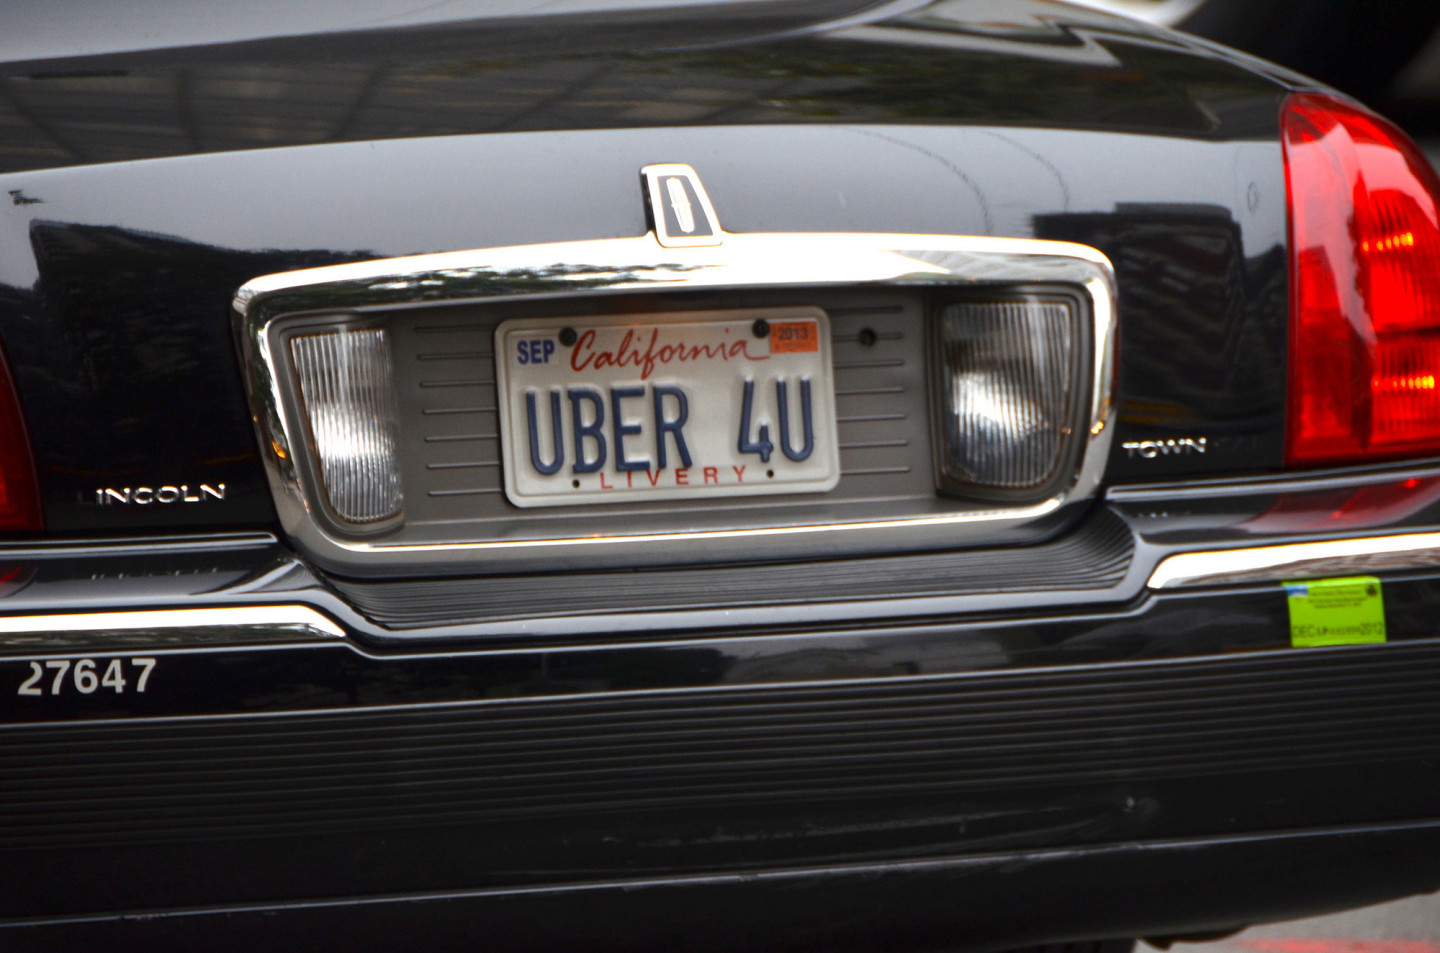 An Uber car drives in San Francisco, where ride services are now a major presence.